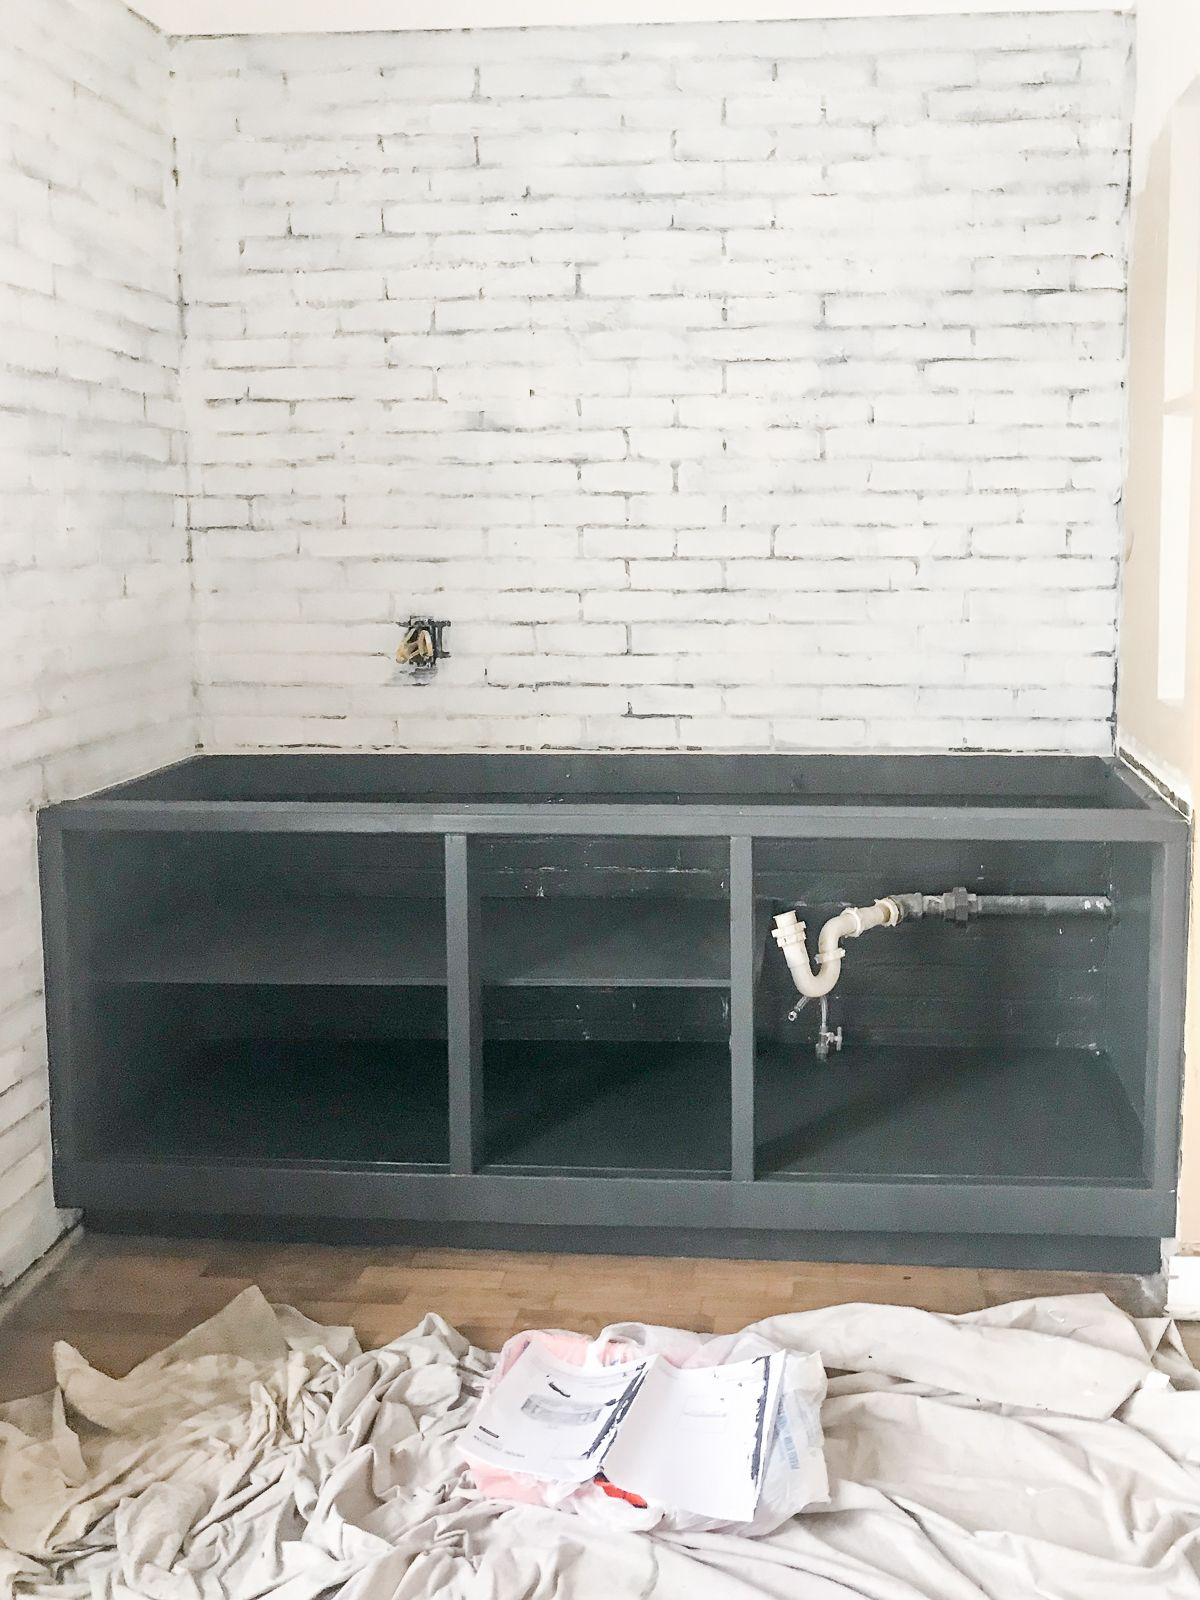 Diy 2x4 Kitchen Cabinets Tutorial Cherished Bliss In 2020 Diy Cabinet Doors Diy Faux Brick Wall Installing Kitchen Cabinets